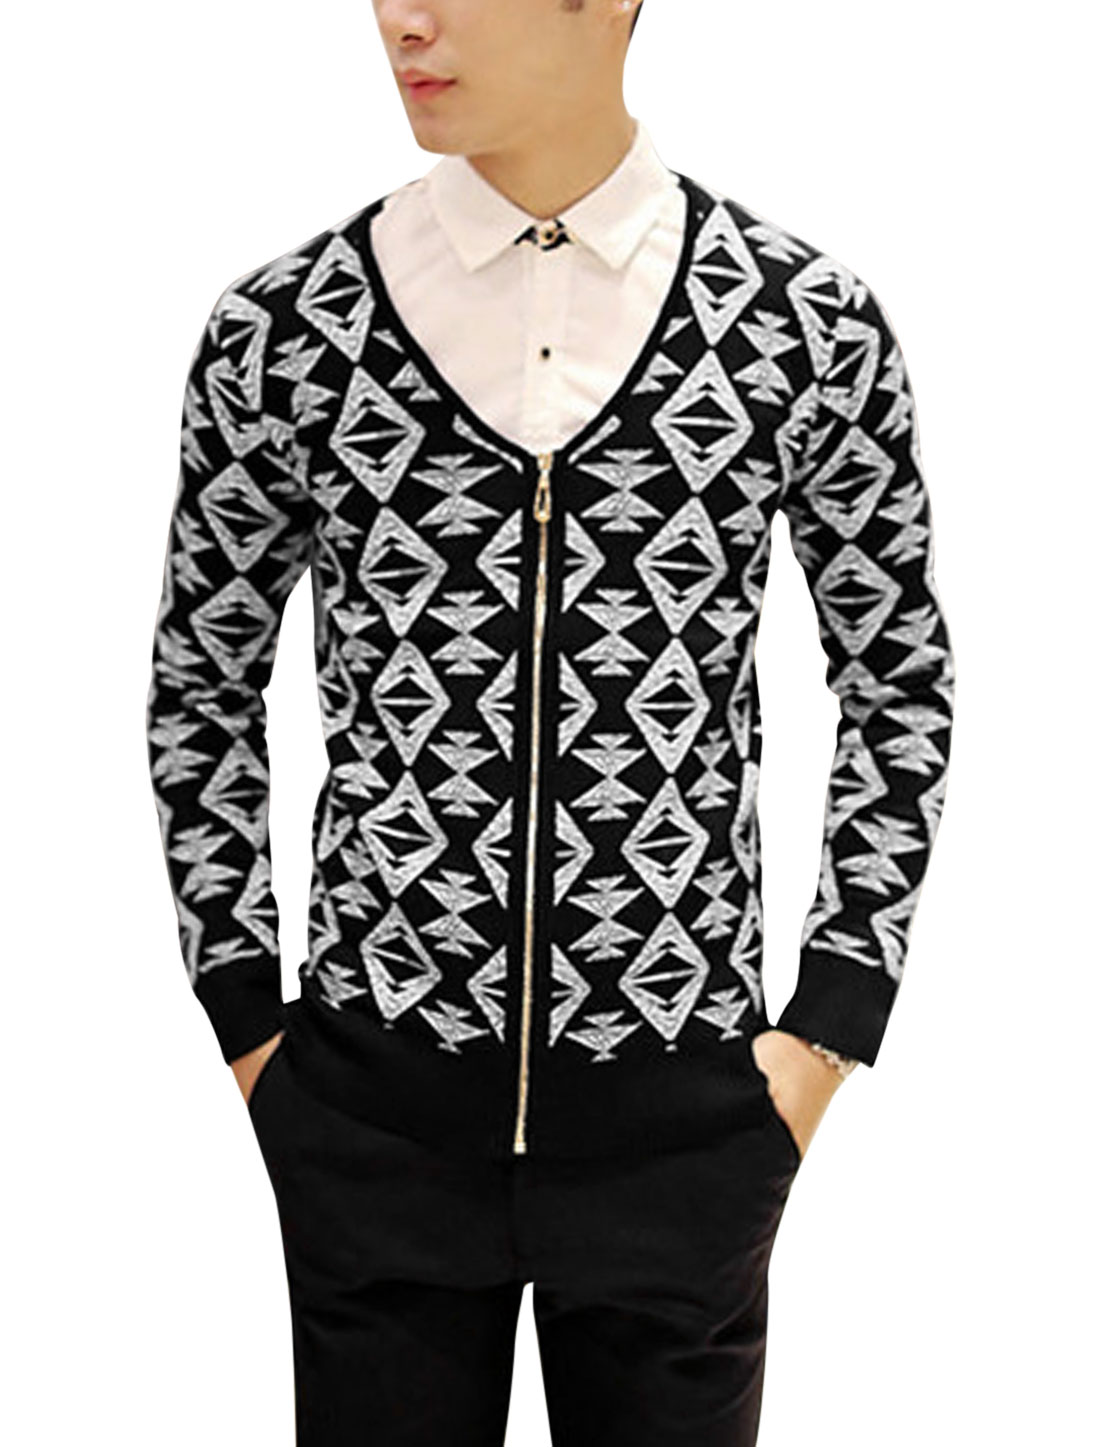 Man Black Long Sleeves V Neck Zip Down Argyle Pattern Casual Cardigan S